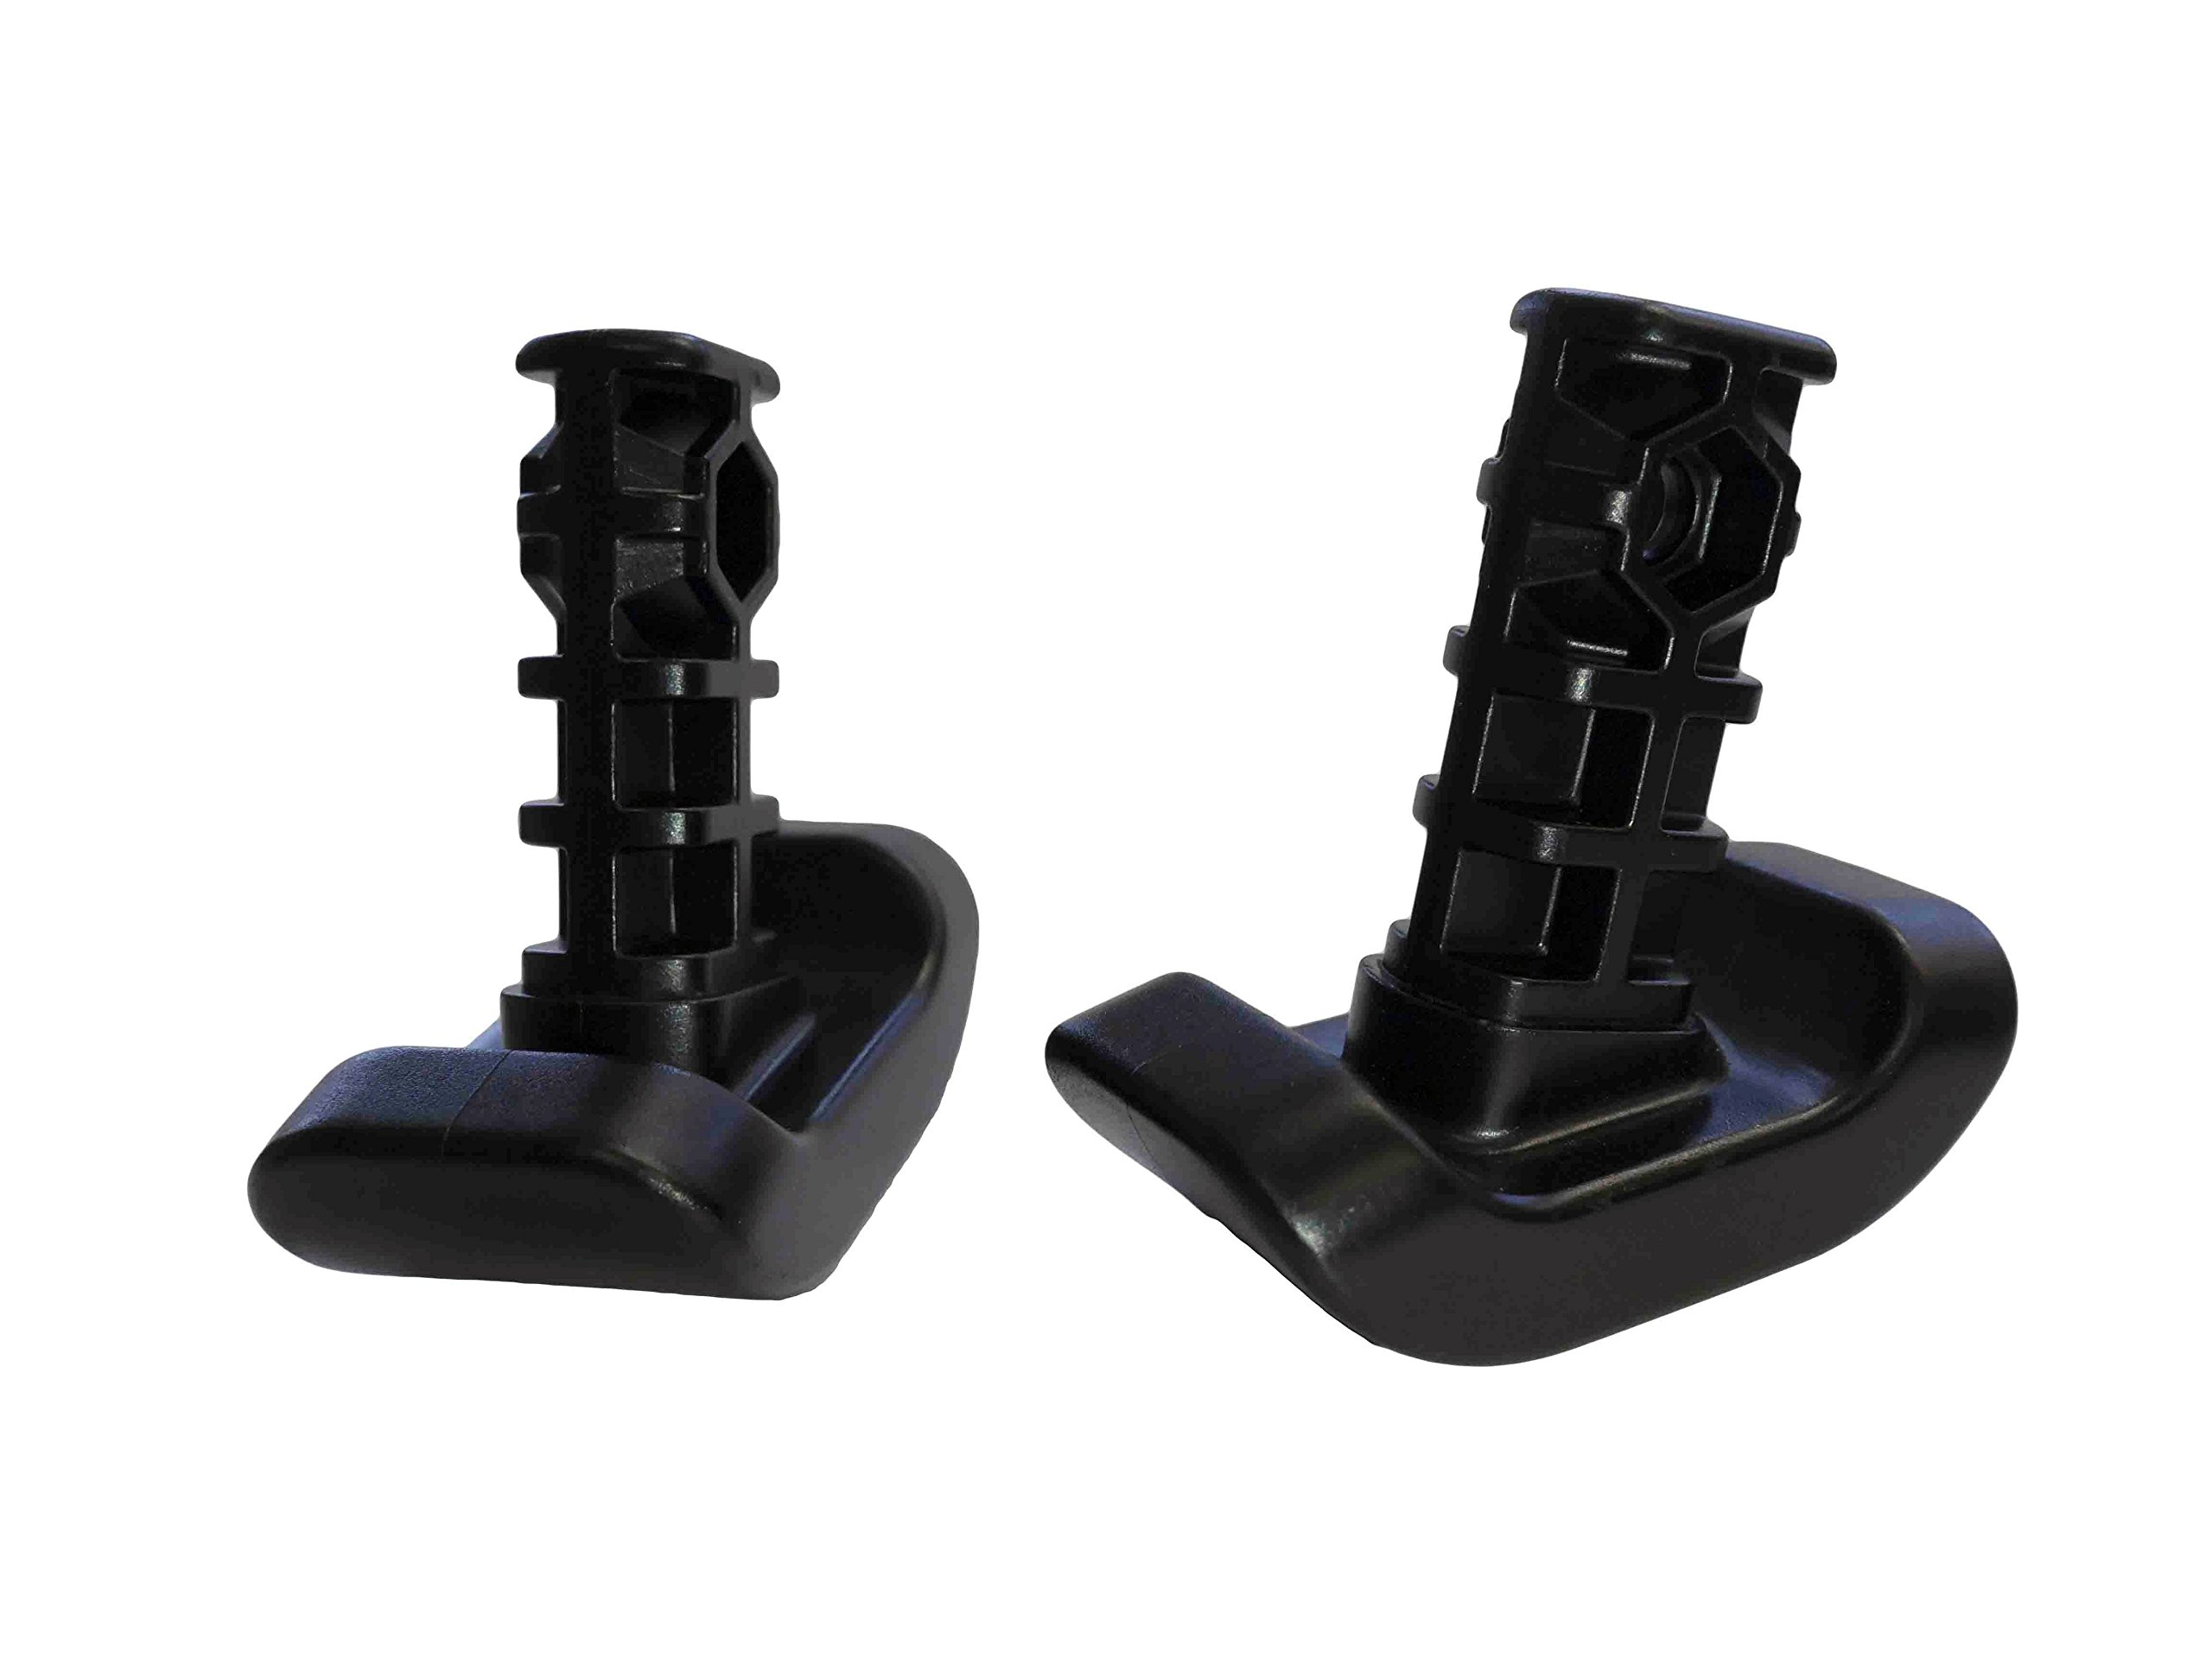 Stander Replacement Ski Glides - For the EZ Fold N' Go Walker and Able Life Space Saver Walker, Durable Plastic - 2 count, Black